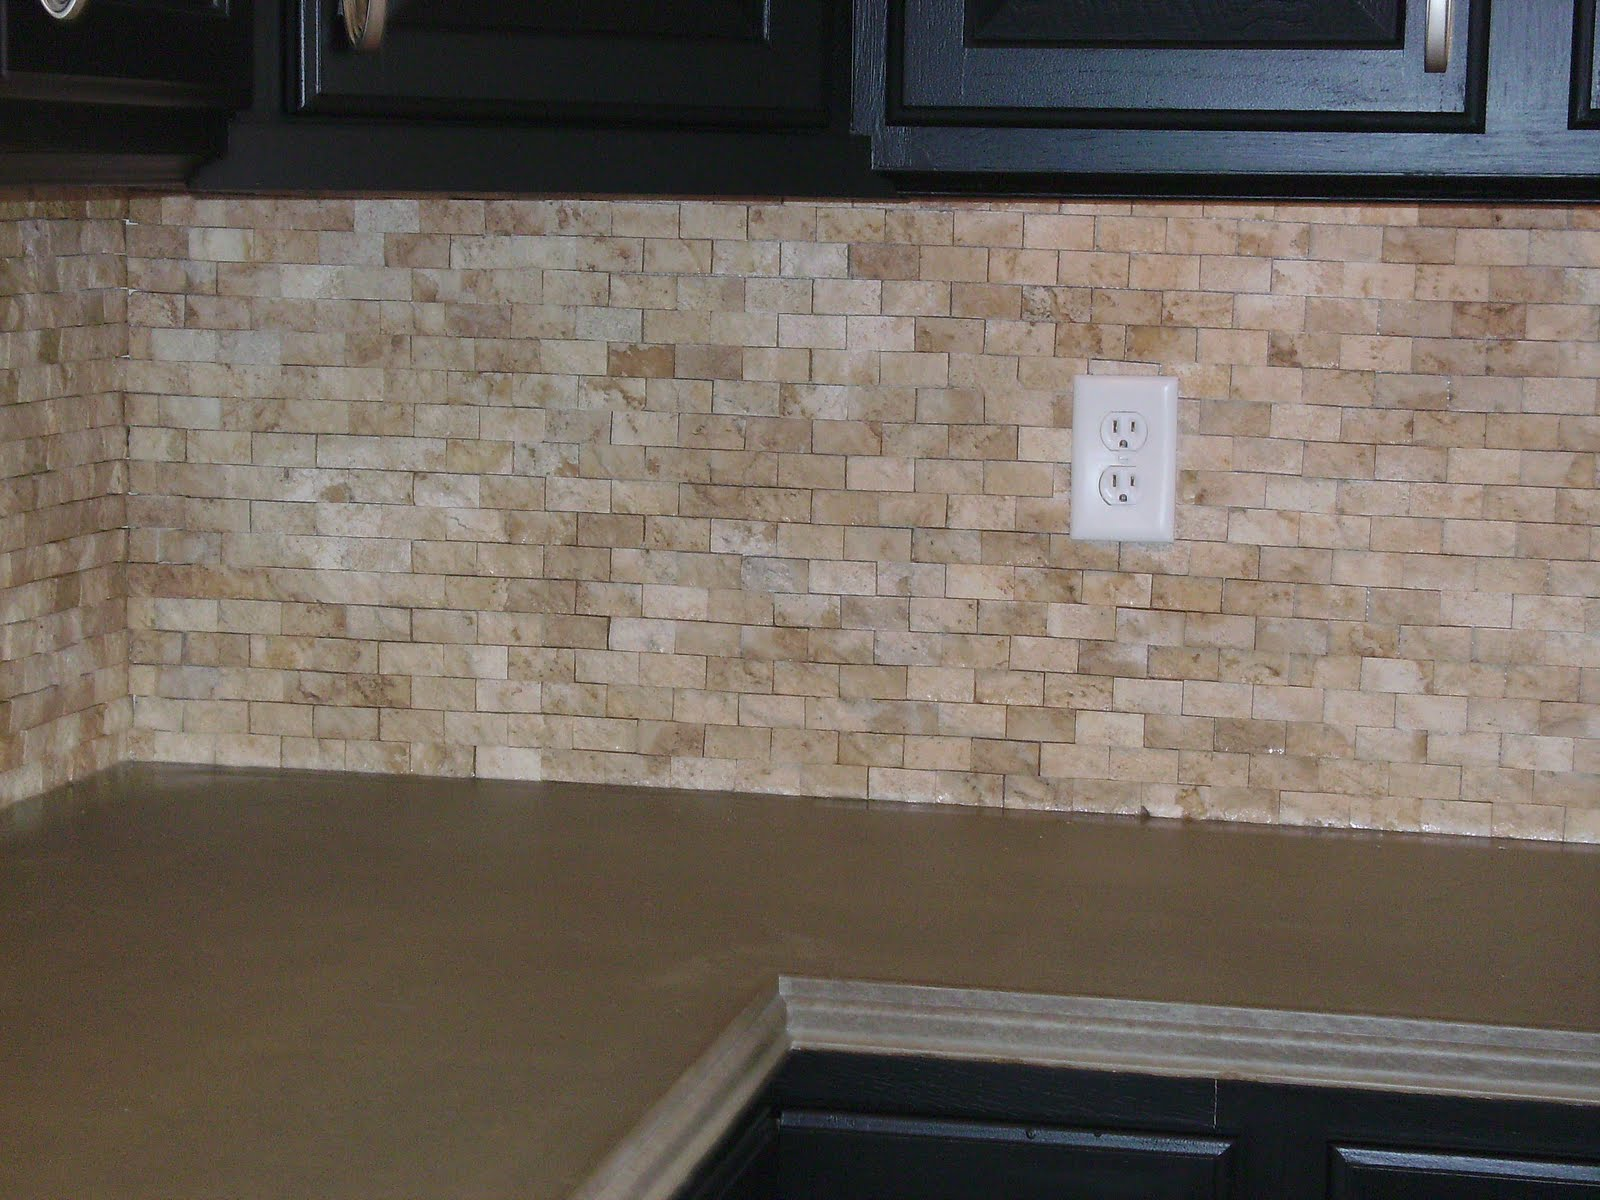 Backsplash Tile Knapp Tile And Flooring, Inc.: Split Faced Stone Backsplash